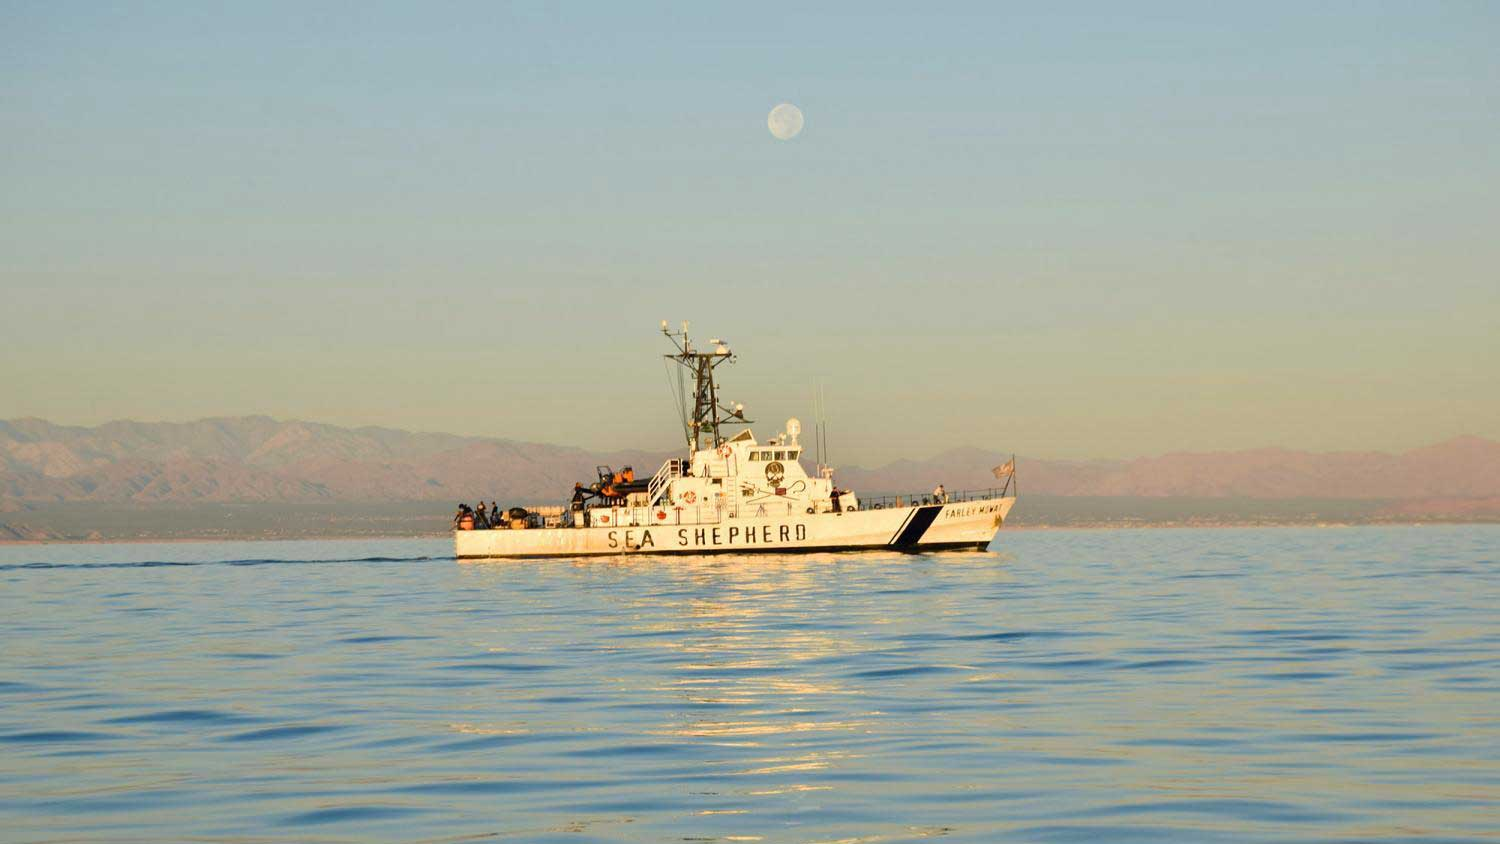 Sea Shepherd Conservation Society's patrol ship M/V Farley Mowat in the Sea of Cortez in September 2019.